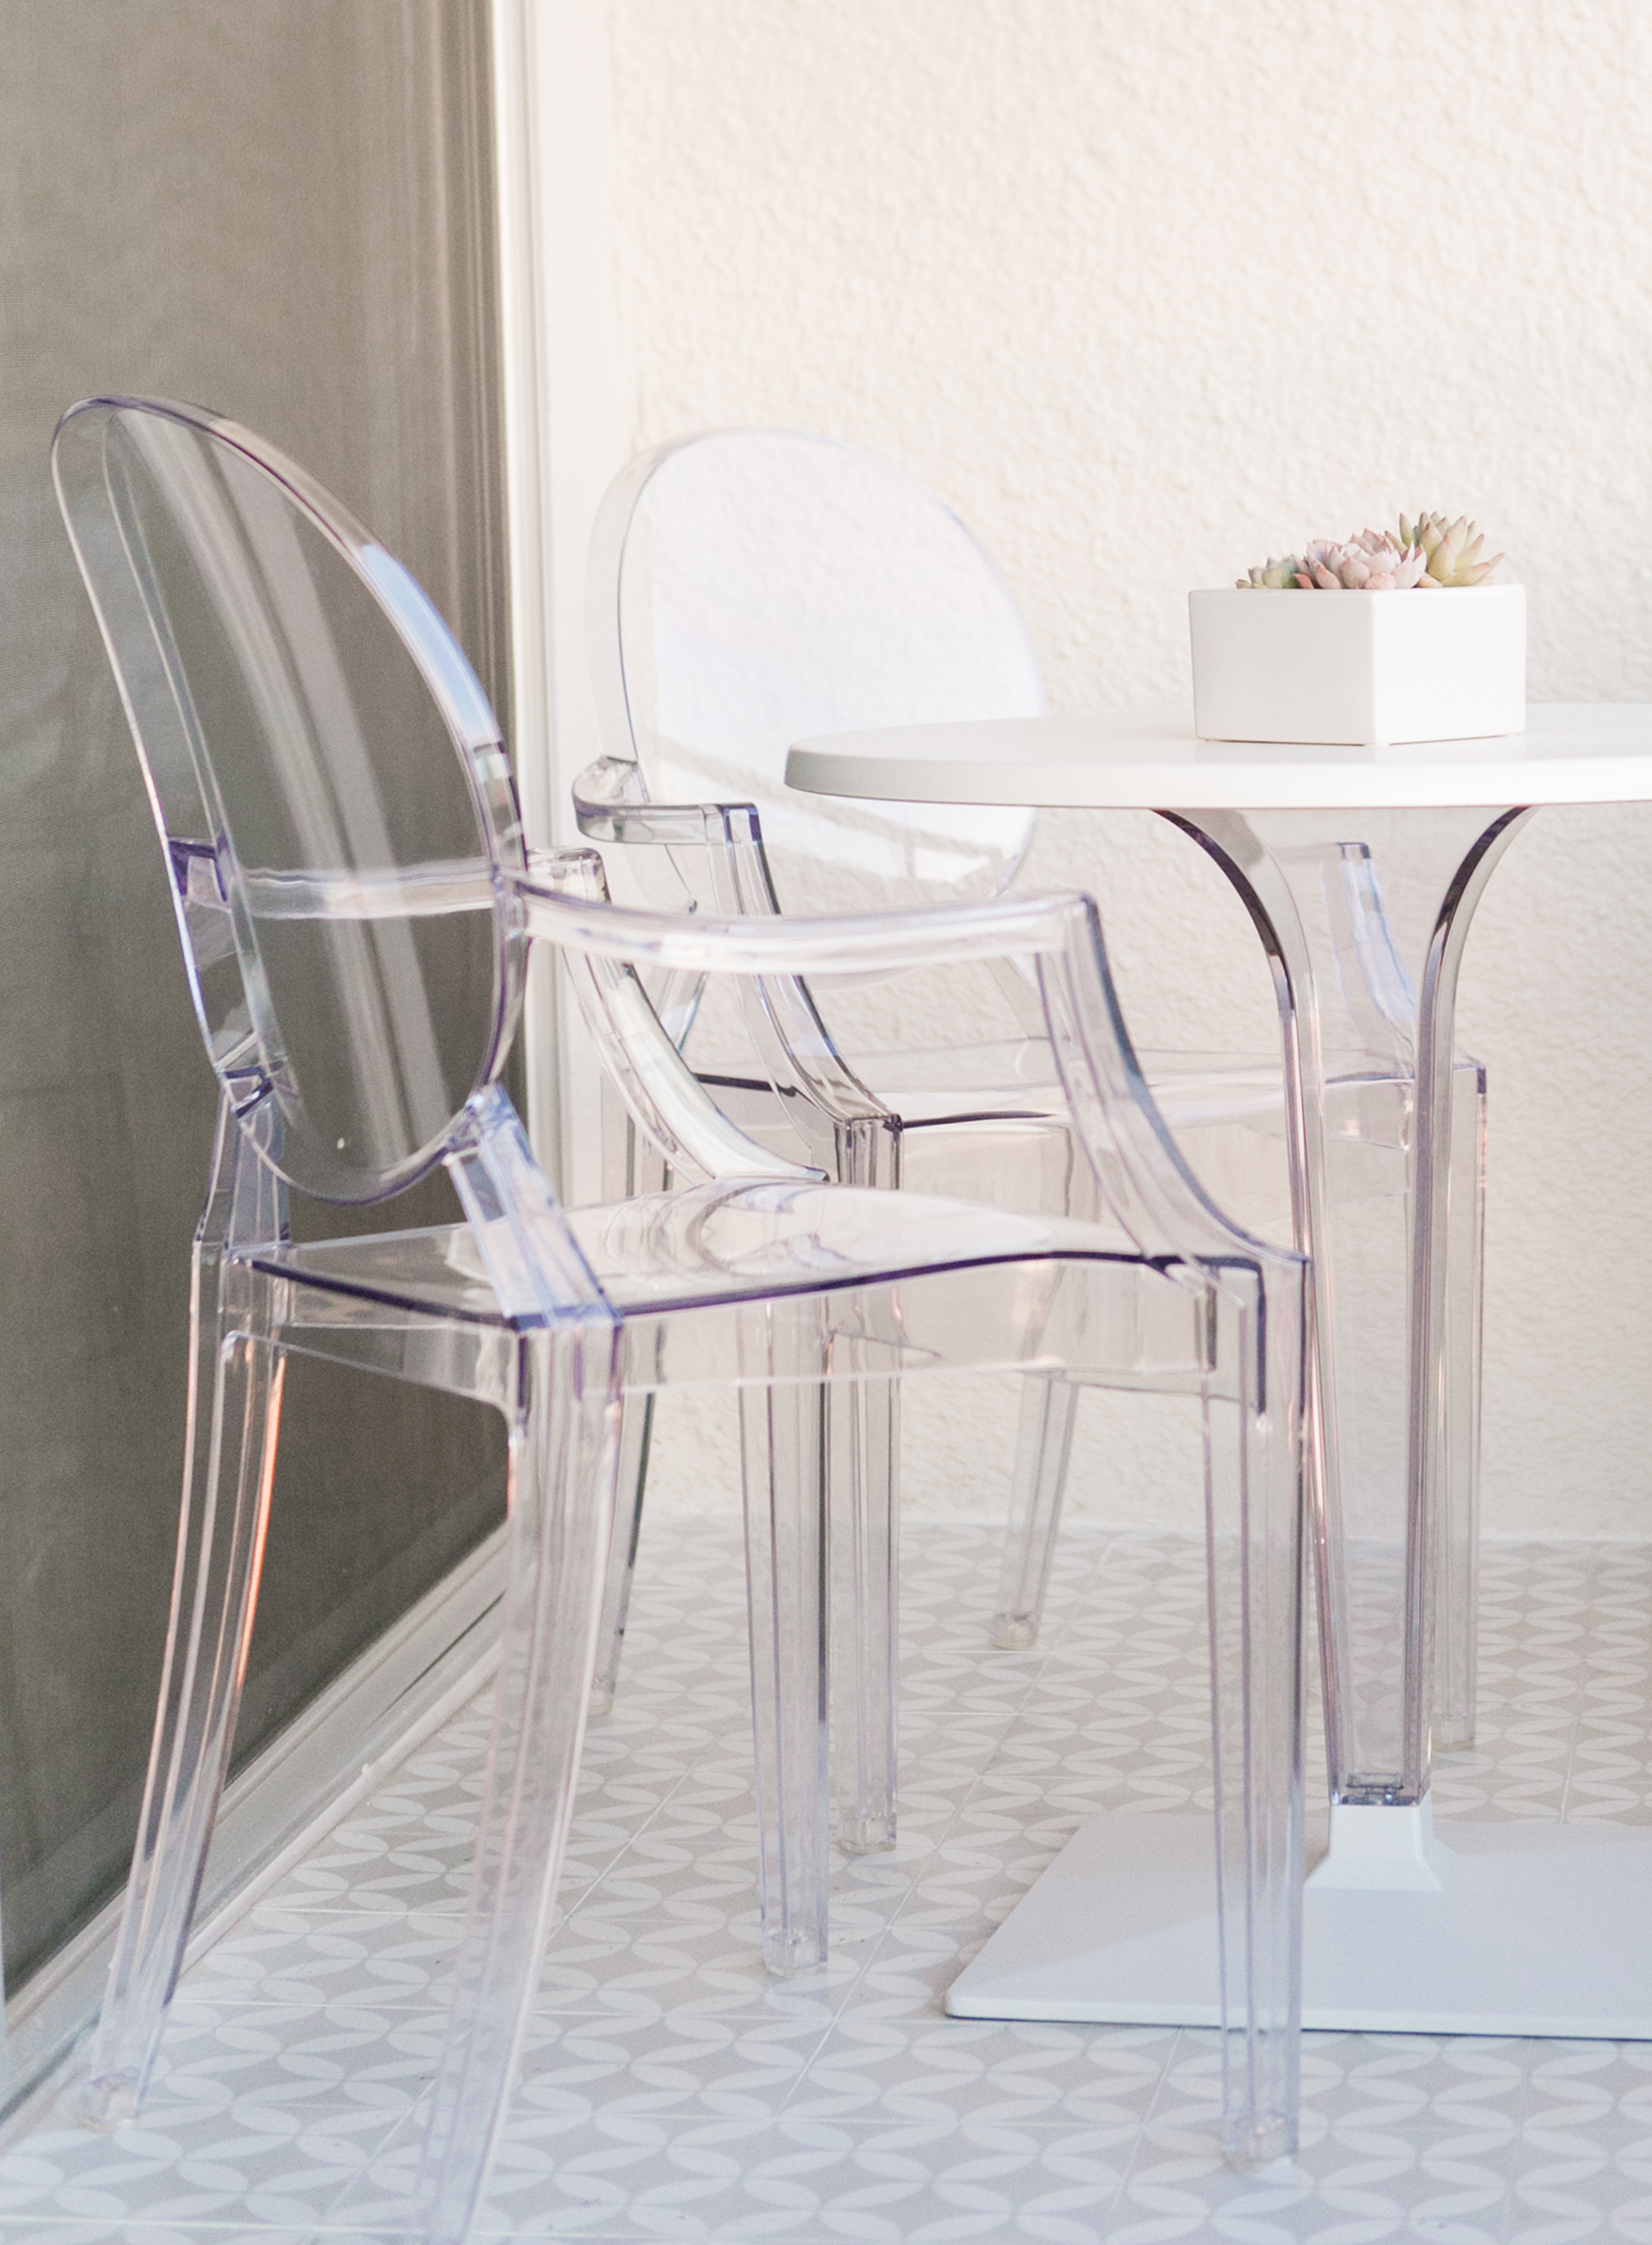 Designer Acrylic Chairs Design Plastic Chair Transparent 2xhome